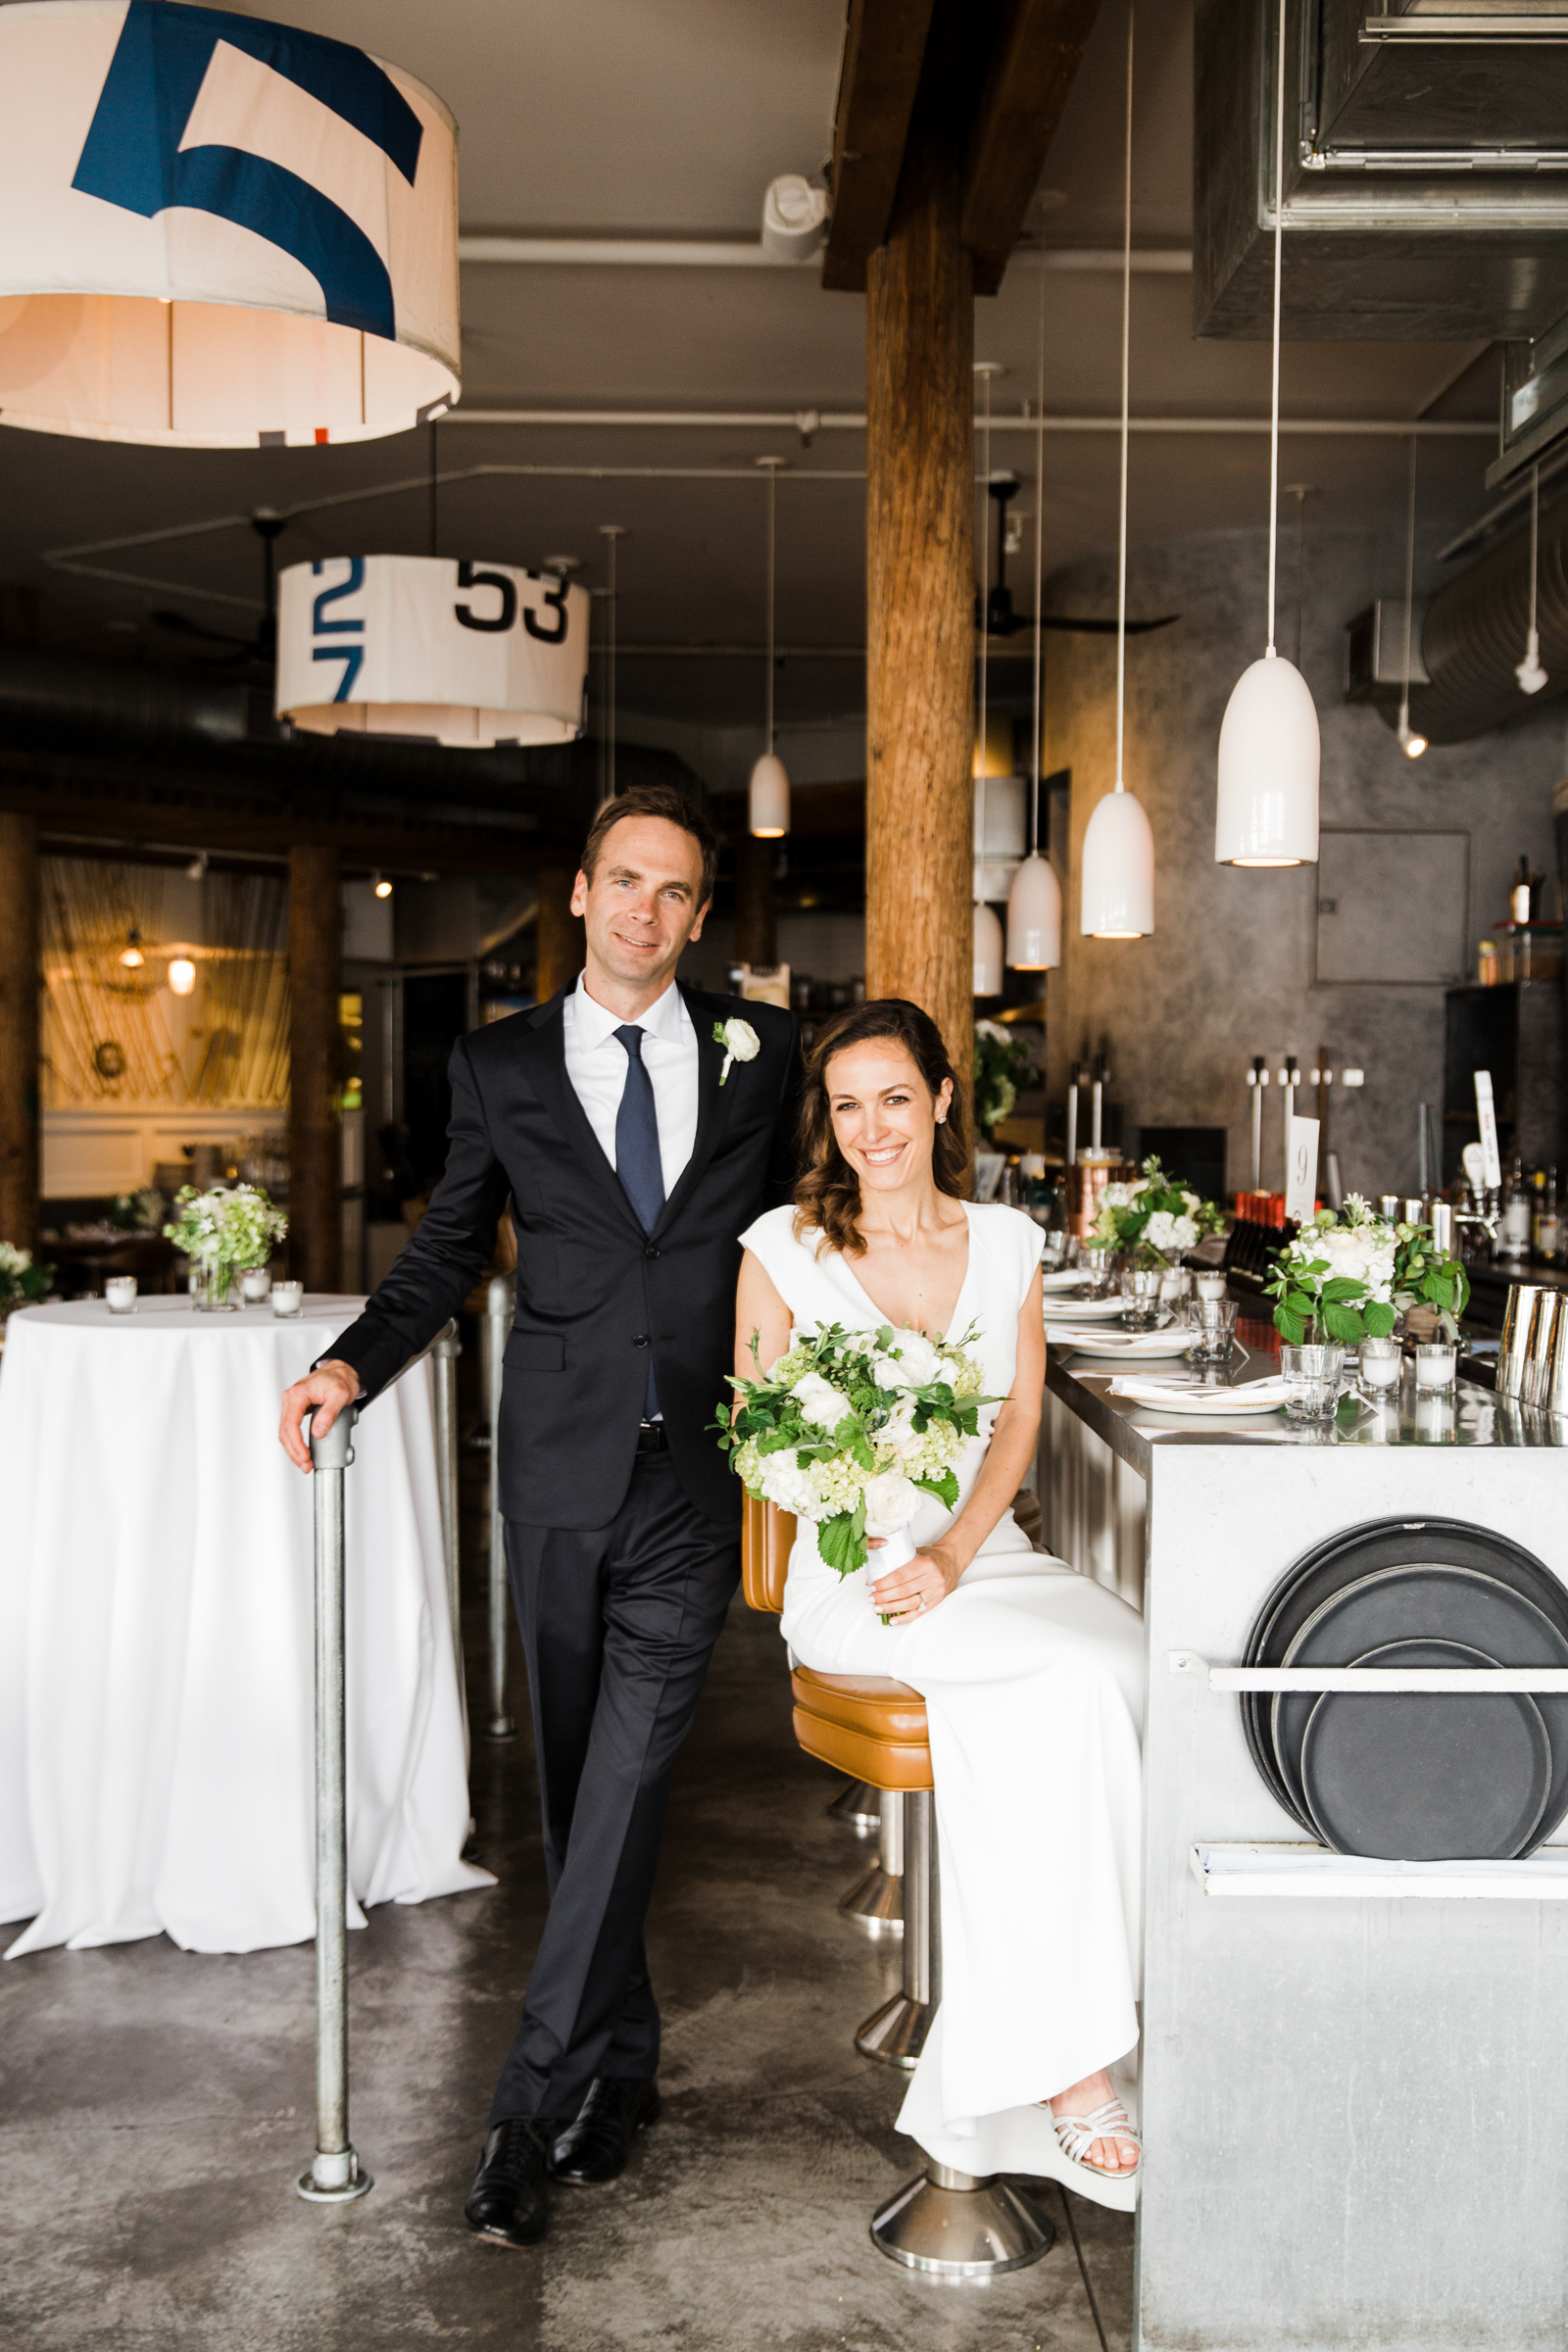 Seattle elopement photo at restaurant - photo by Stephanie Cristalli Photography